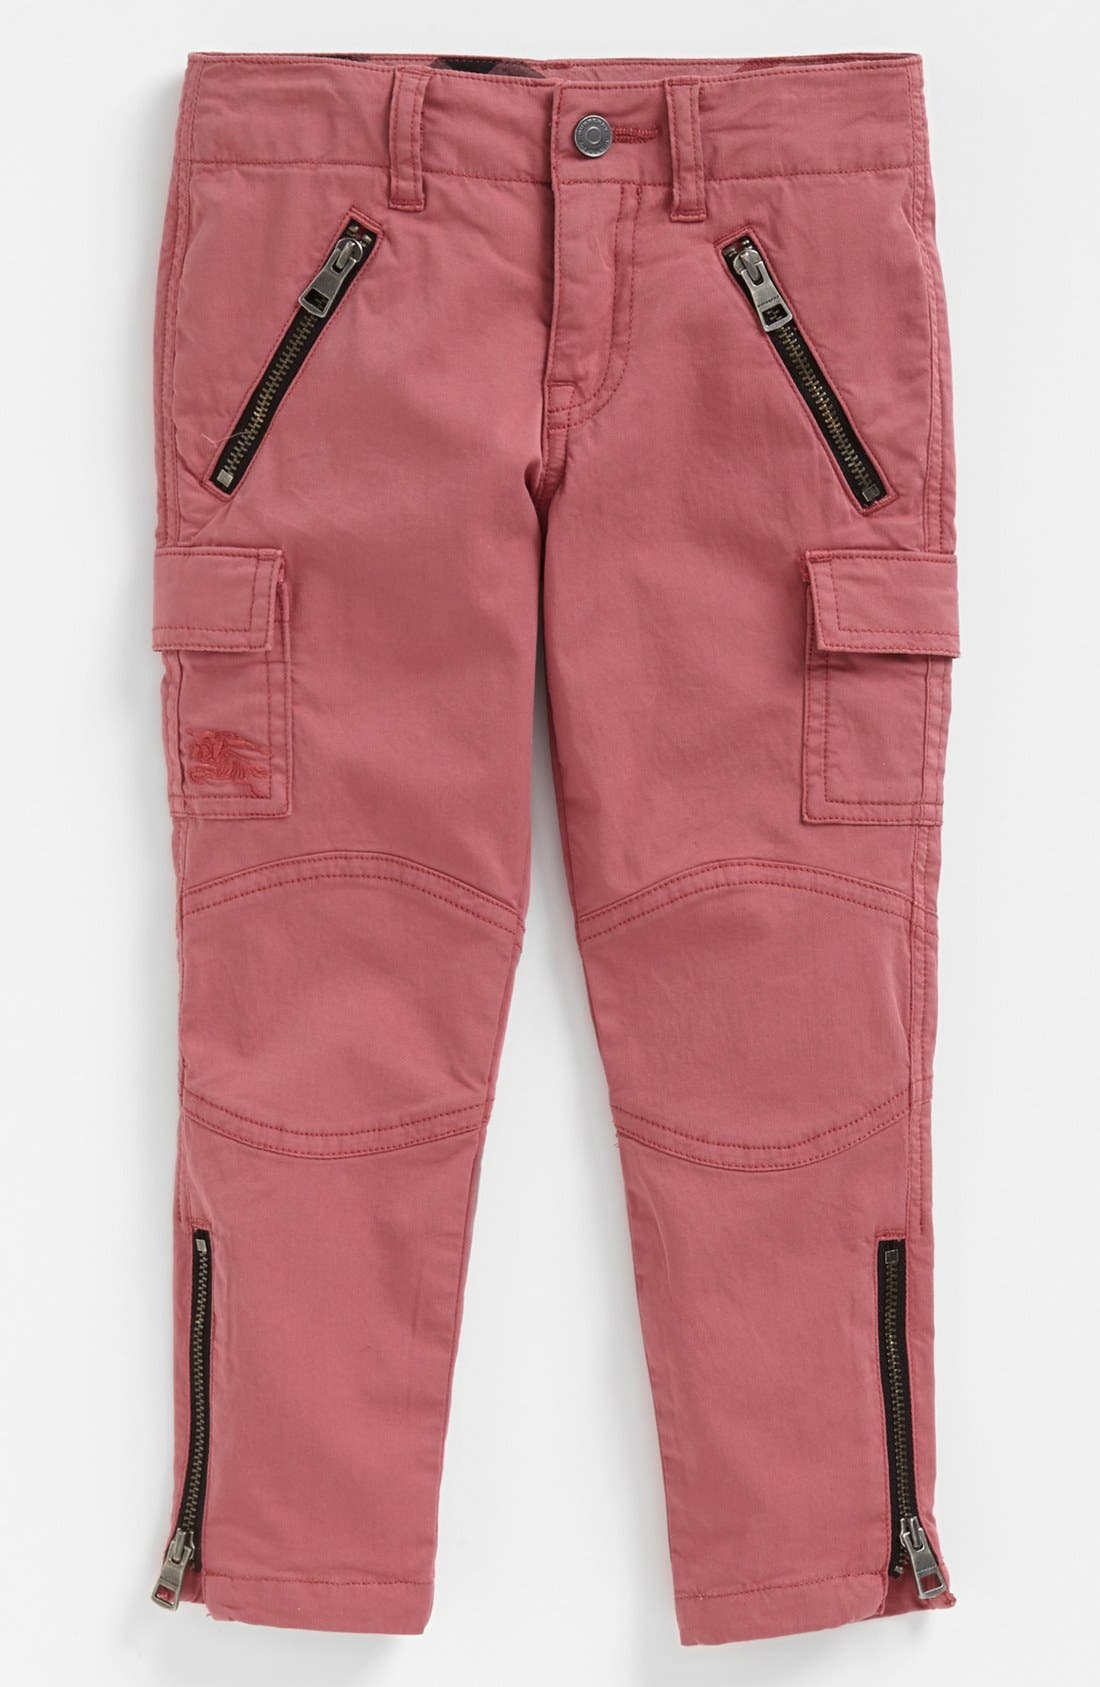 Alternate Image 1 Selected - Burberry Cargo Pants (Little Girls & Big Girls)